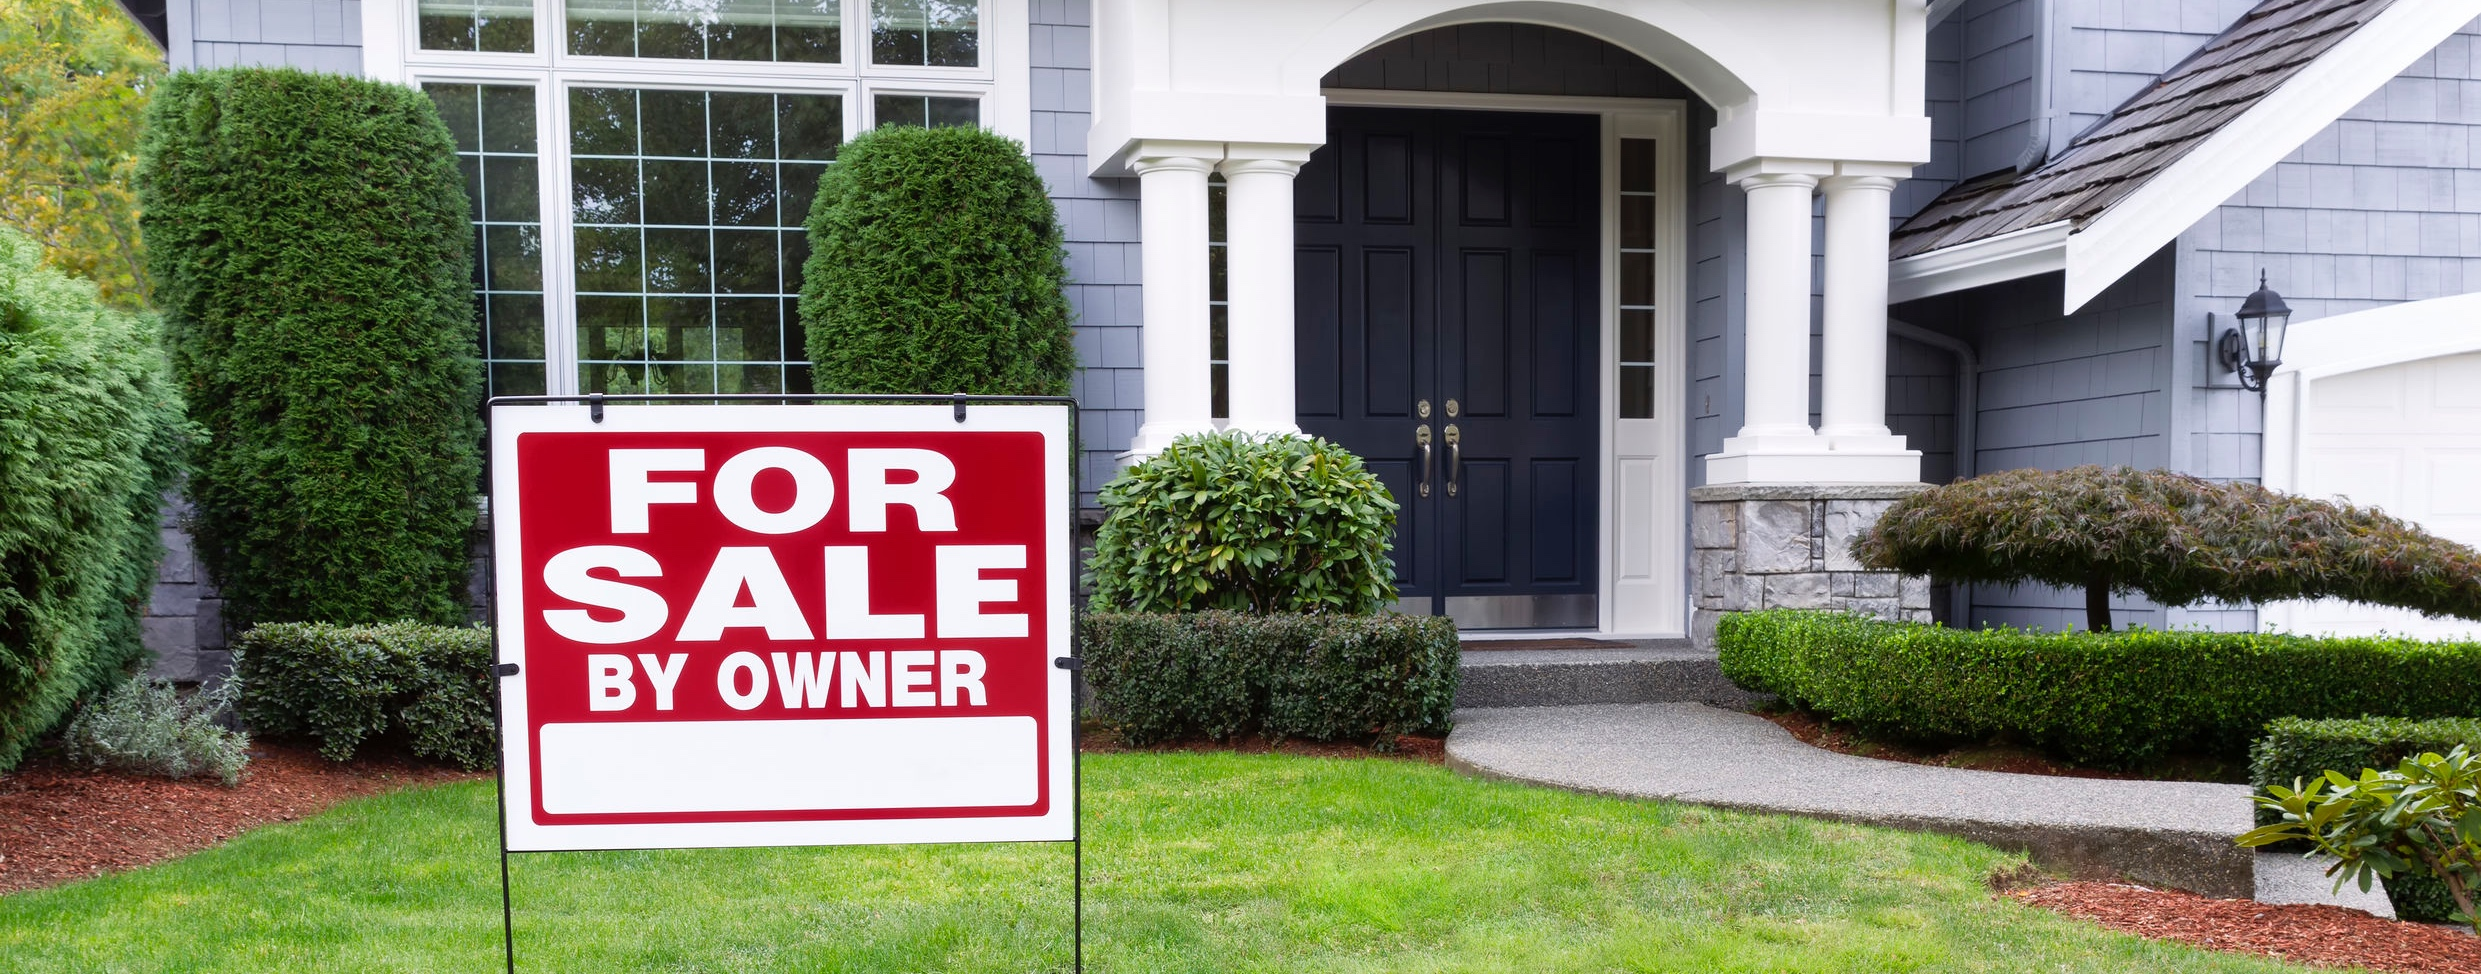 Closeup view of Modern Suburban Home for Sale Real Estate Sign in front